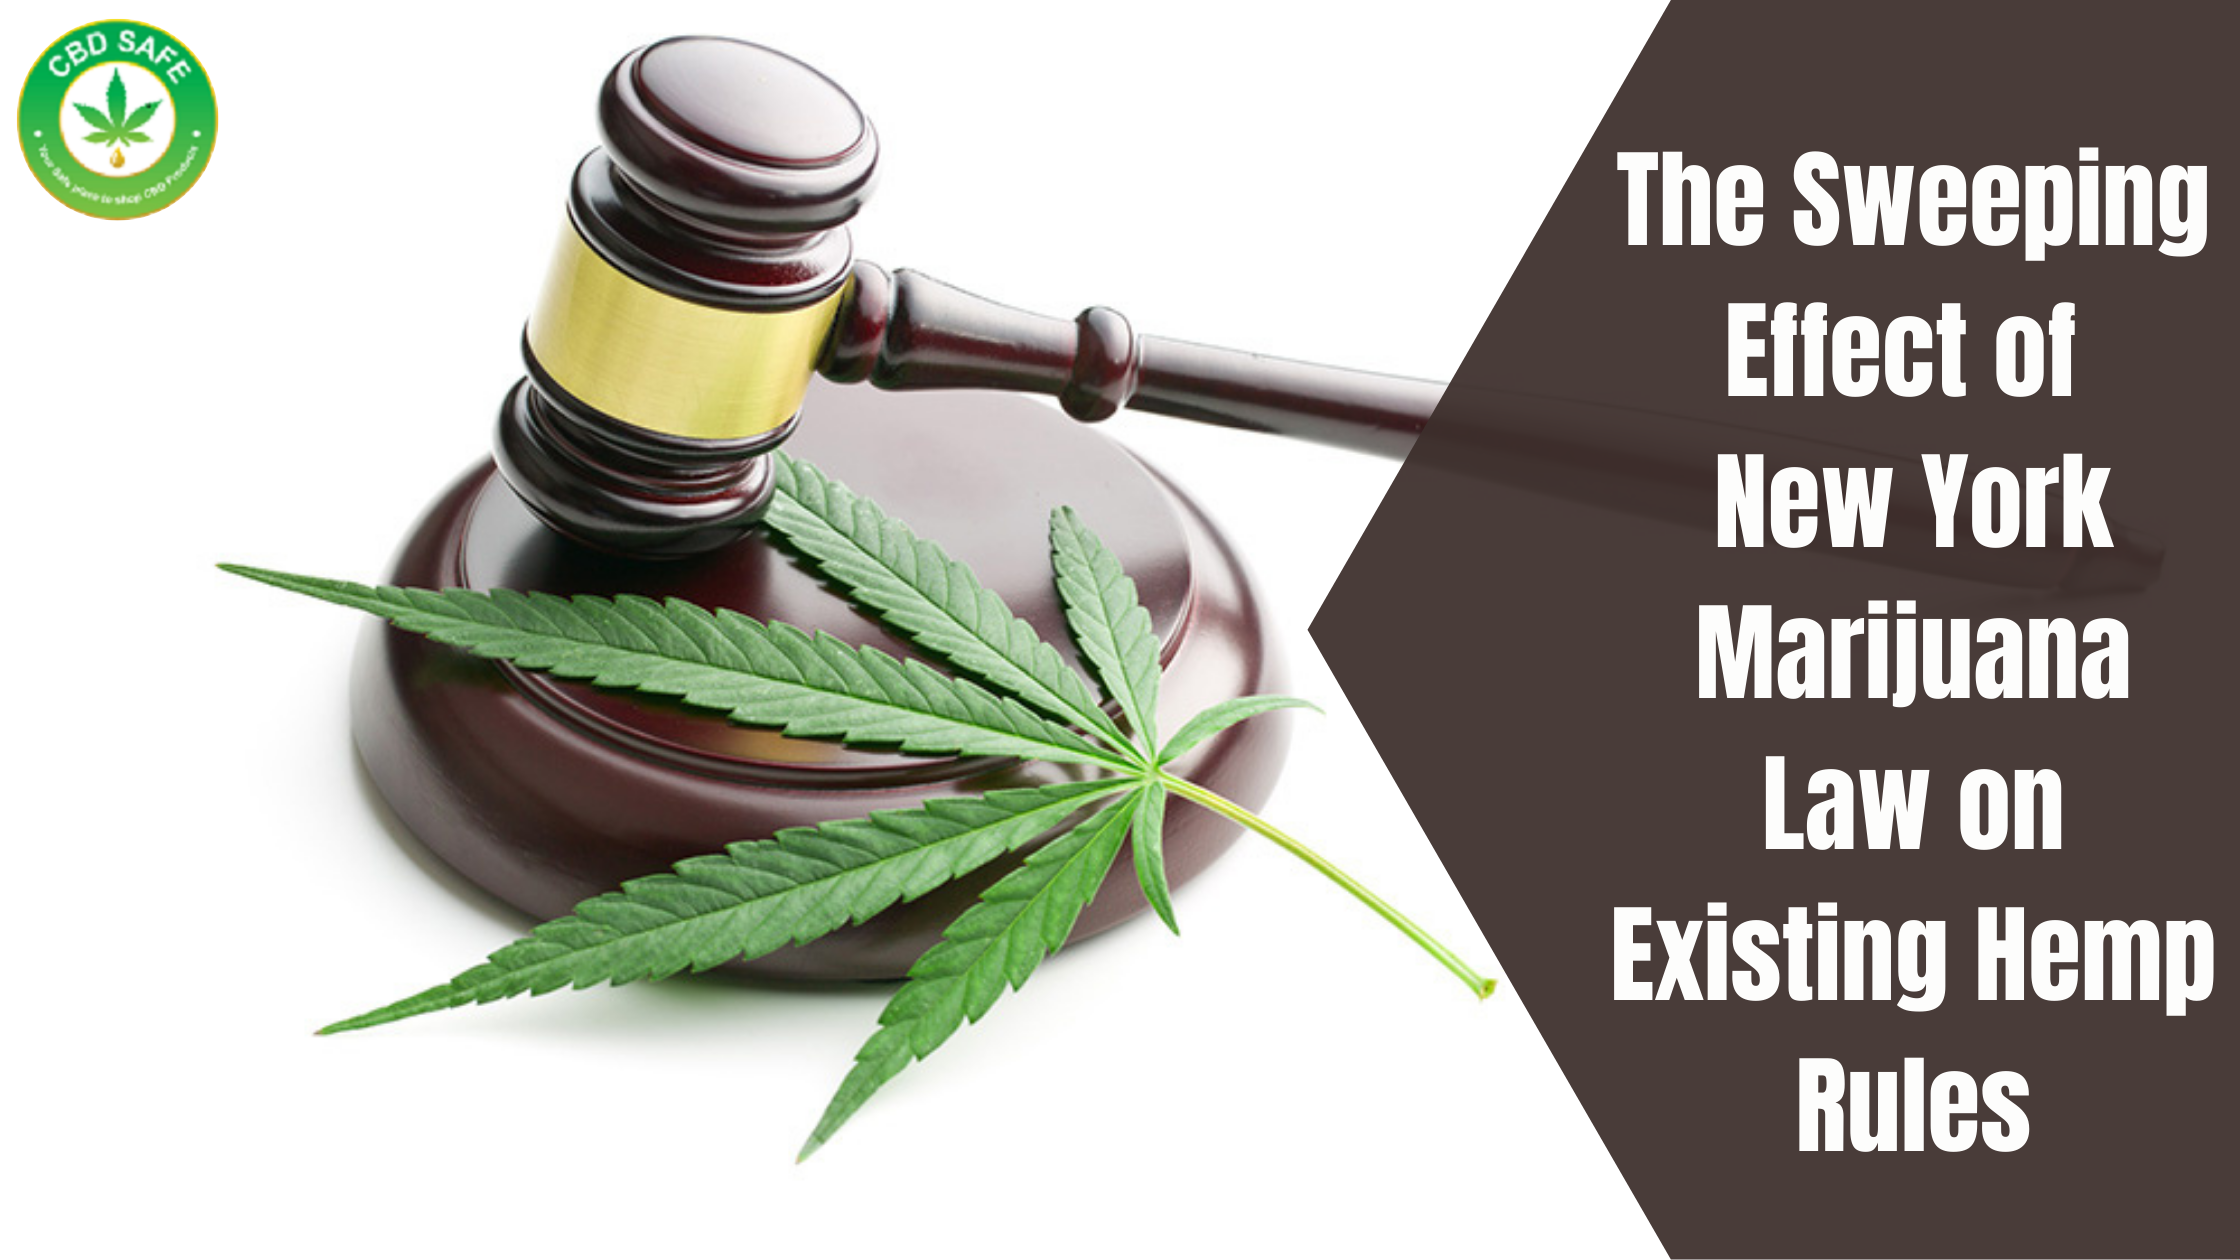 The Sweeping Effect of New York Marijuana Law on Existing Hemp Rules